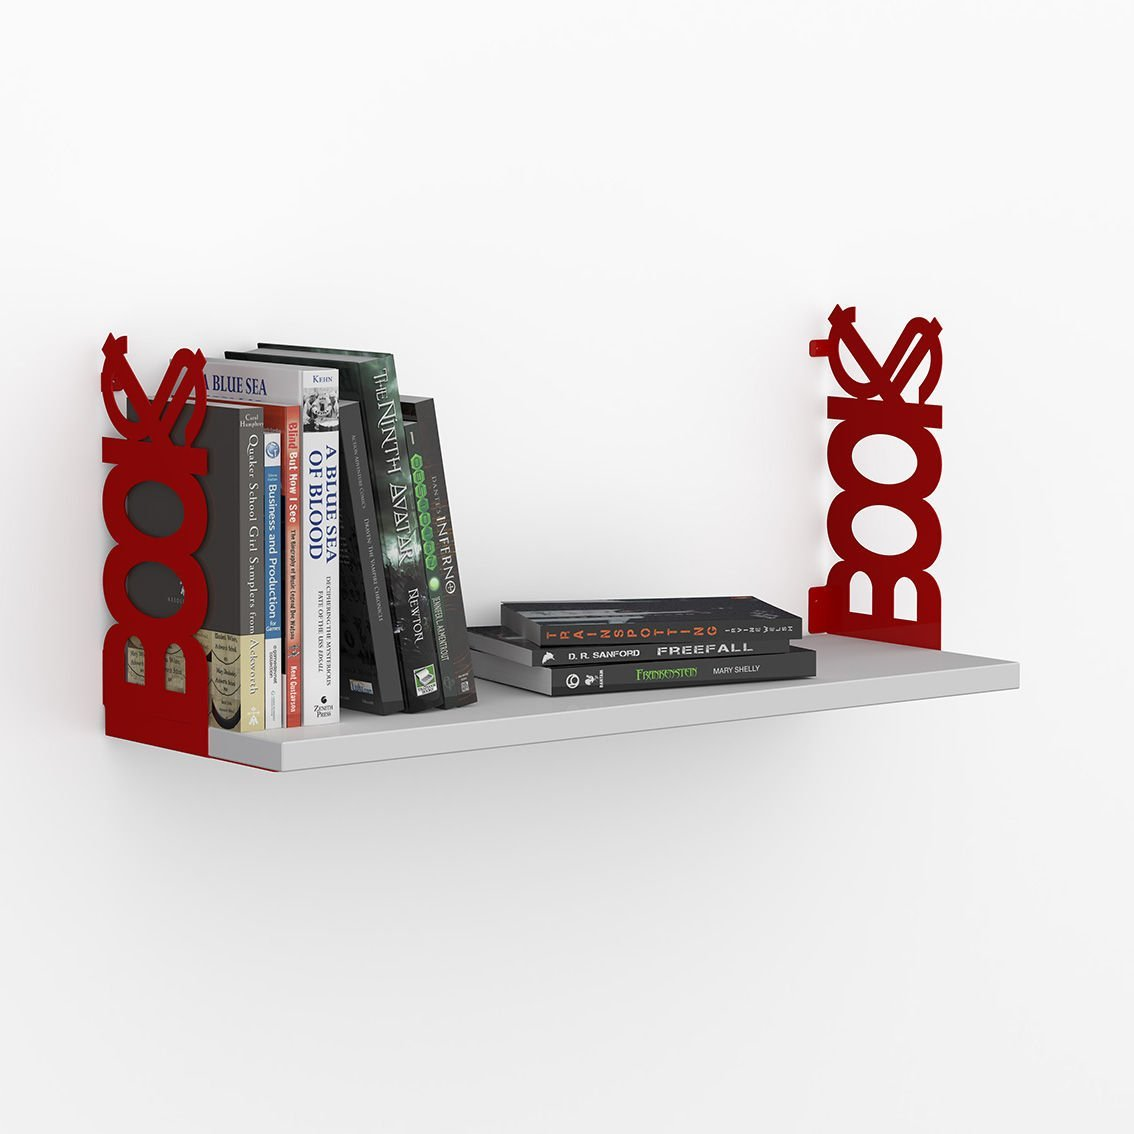 LaModaHome Red Iron Handle White Wall Shelf, 100% Melamine Coated Particle Board - Size (28.3'' x 7.9'' x 7.9''), Easy to Hang with Invisible Brackets, Wall Mounted Floating Shelves for Home & Office